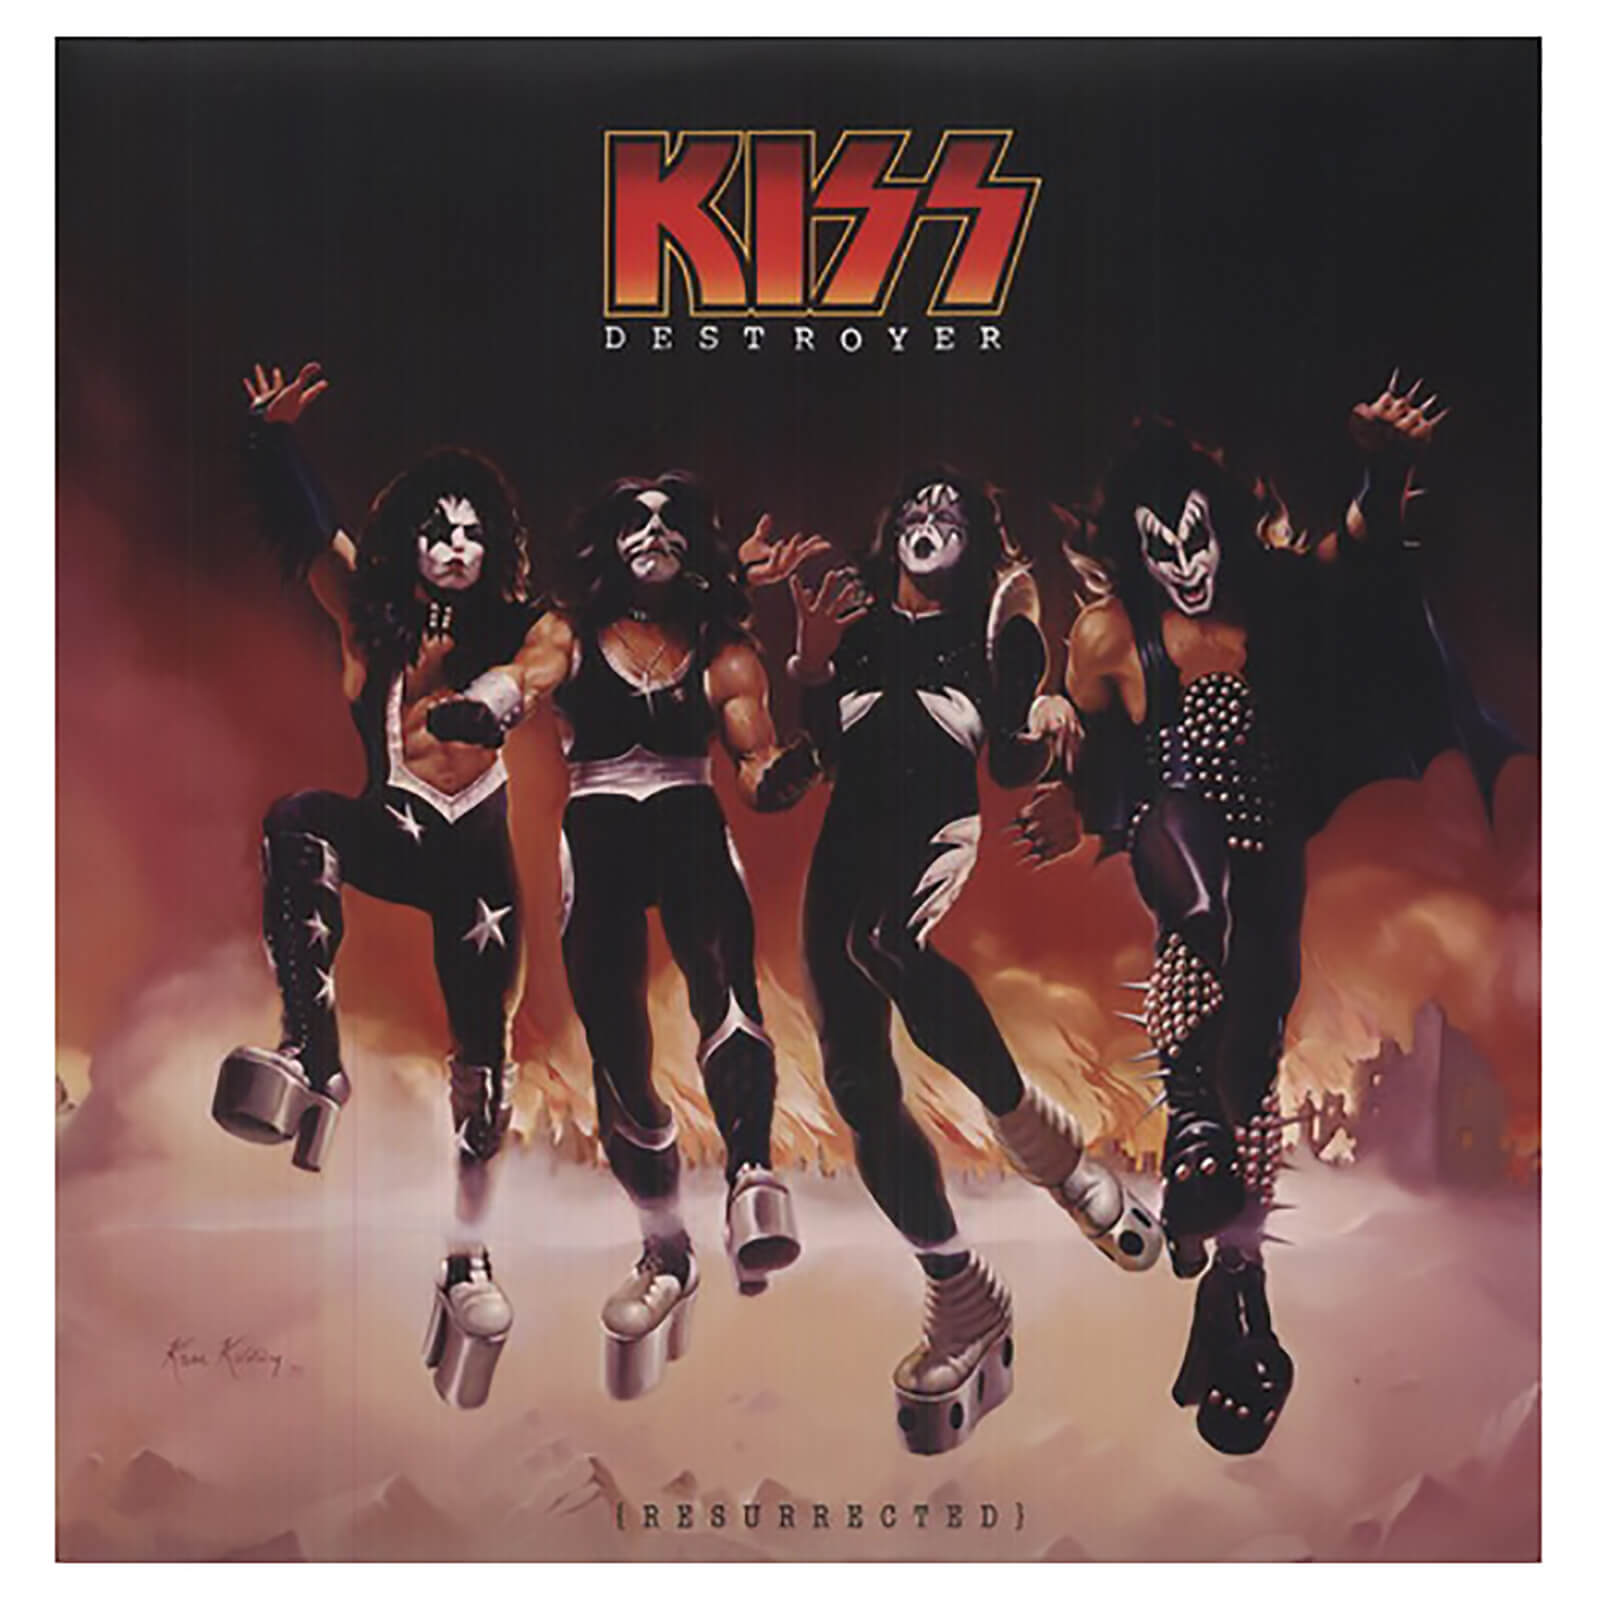 Kiss - Destroyer: Resurrected - Vinyl